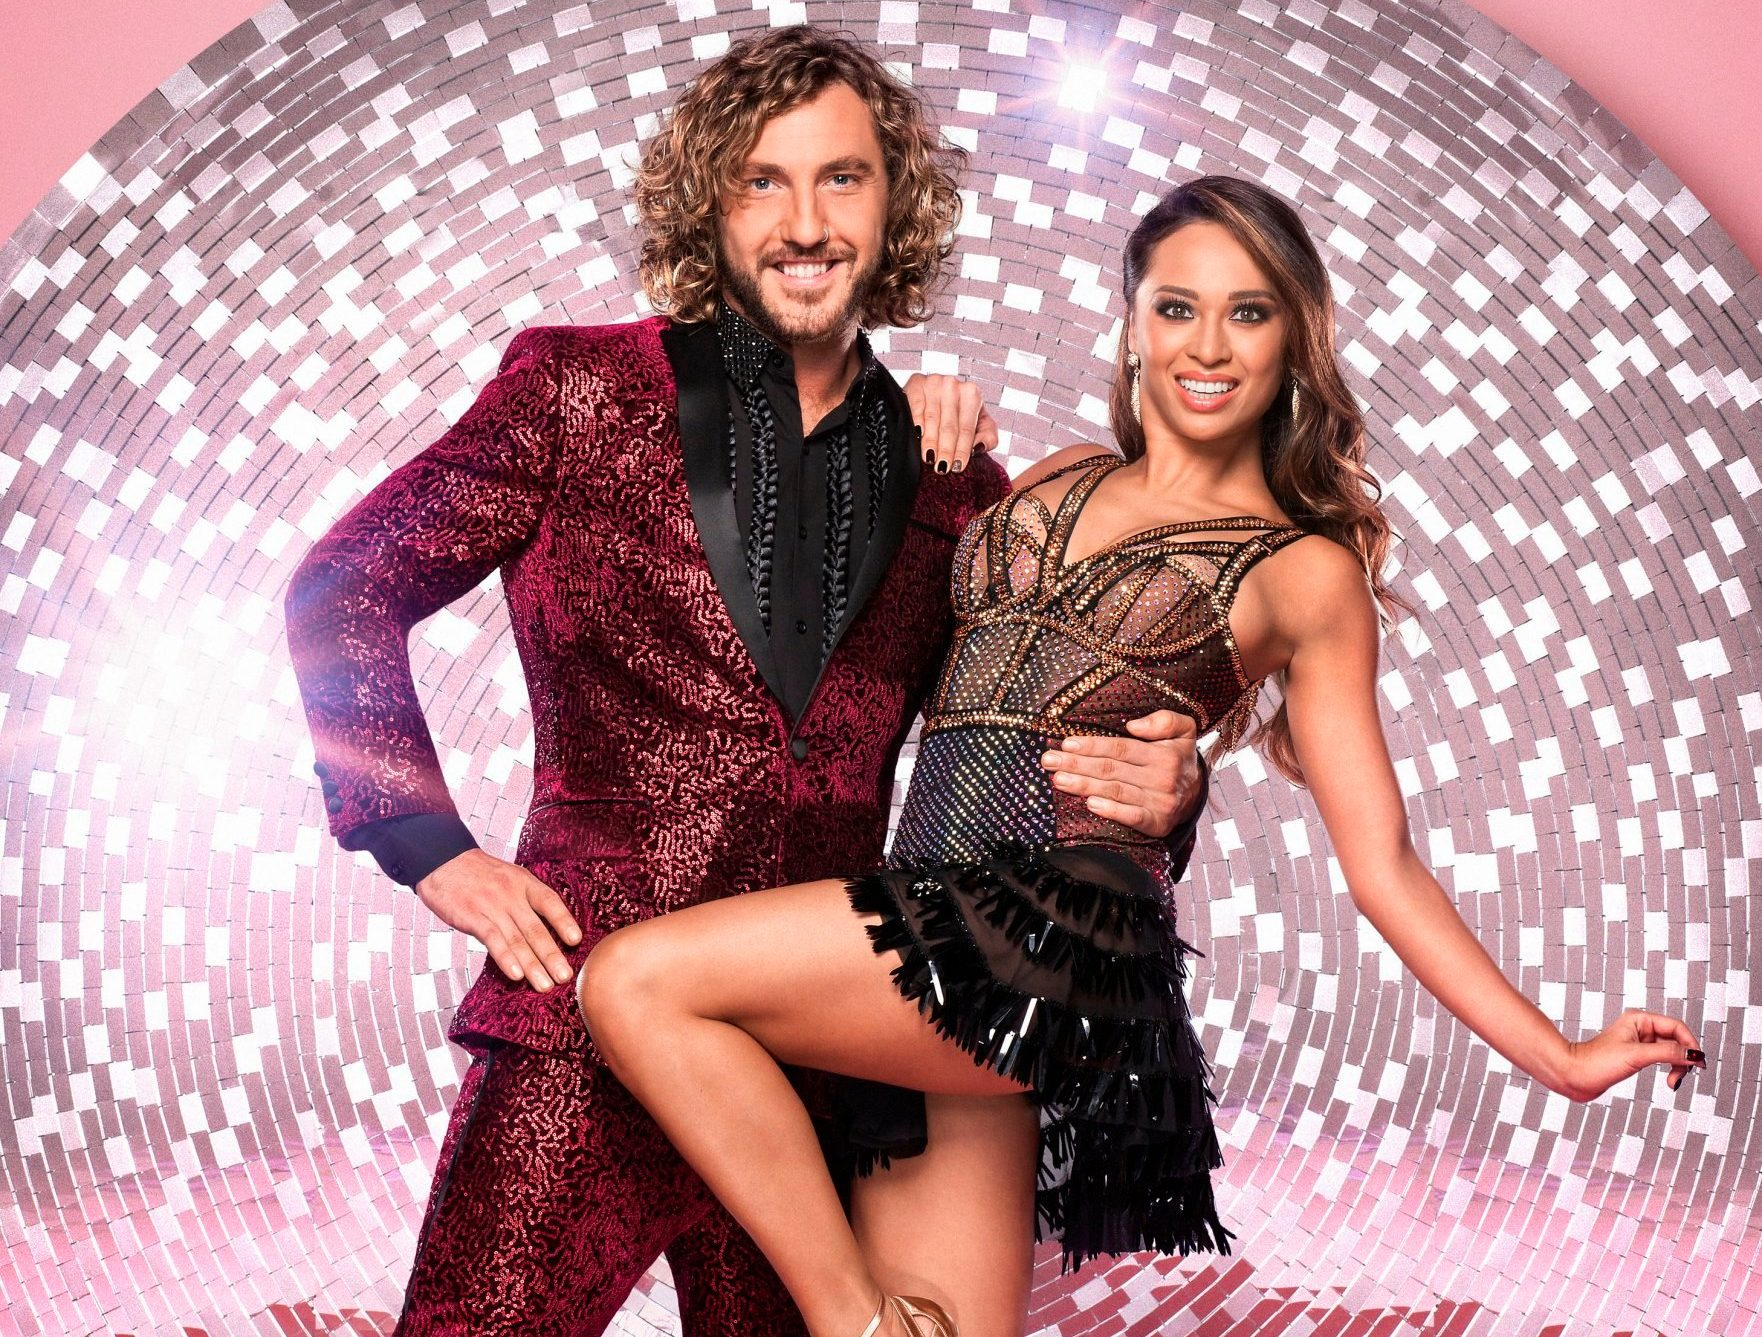 Katya Jones 'axed from Strictly Come Dancing line-up' over Seann Walsh kiss as husband Neil 'gets nod for next series'